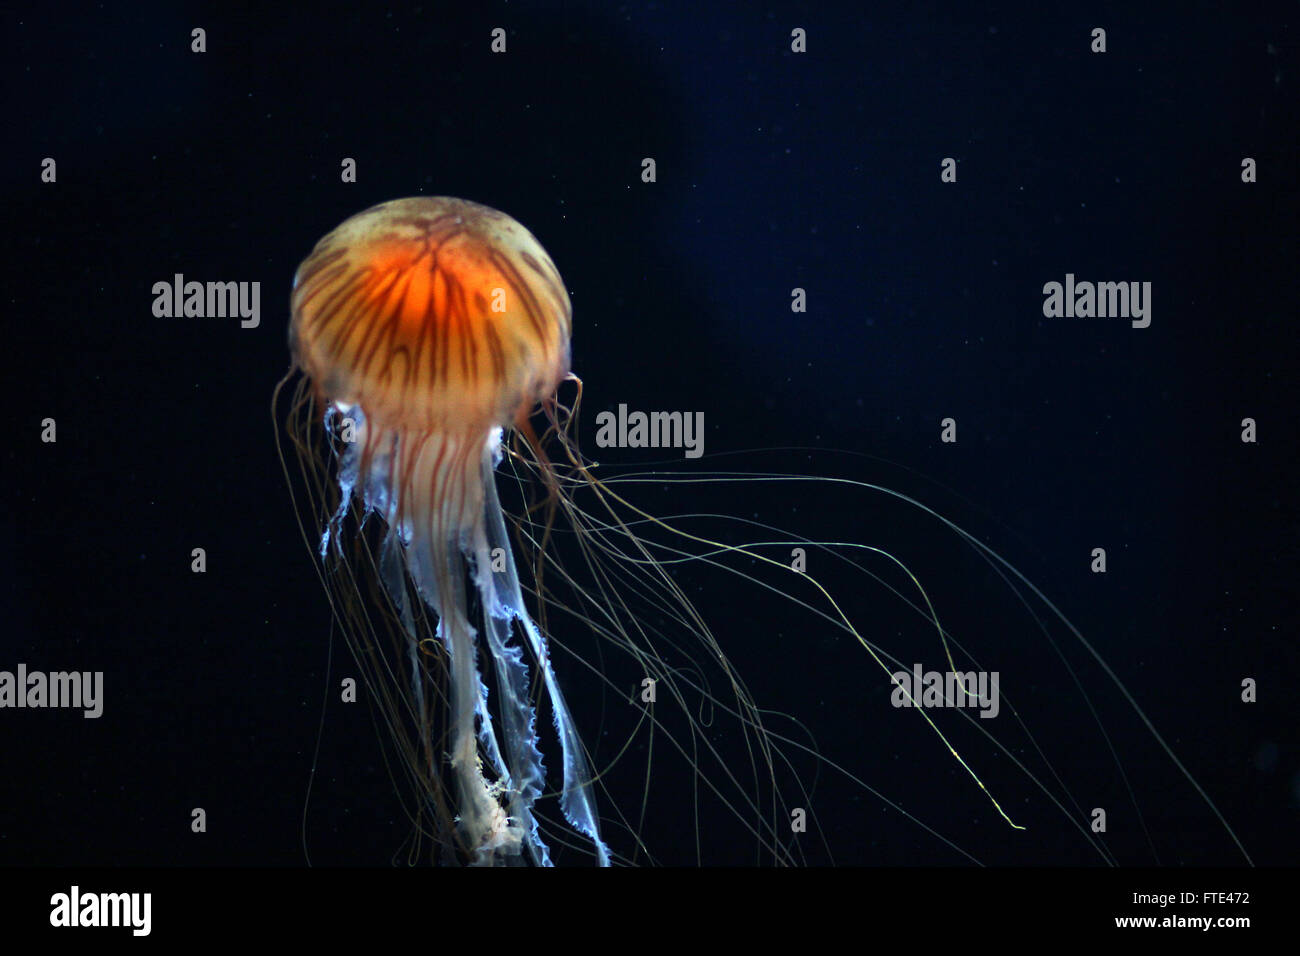 The stinging cells and venom of the compass jellyfish can produce long lasting weals in humans - Stock Image